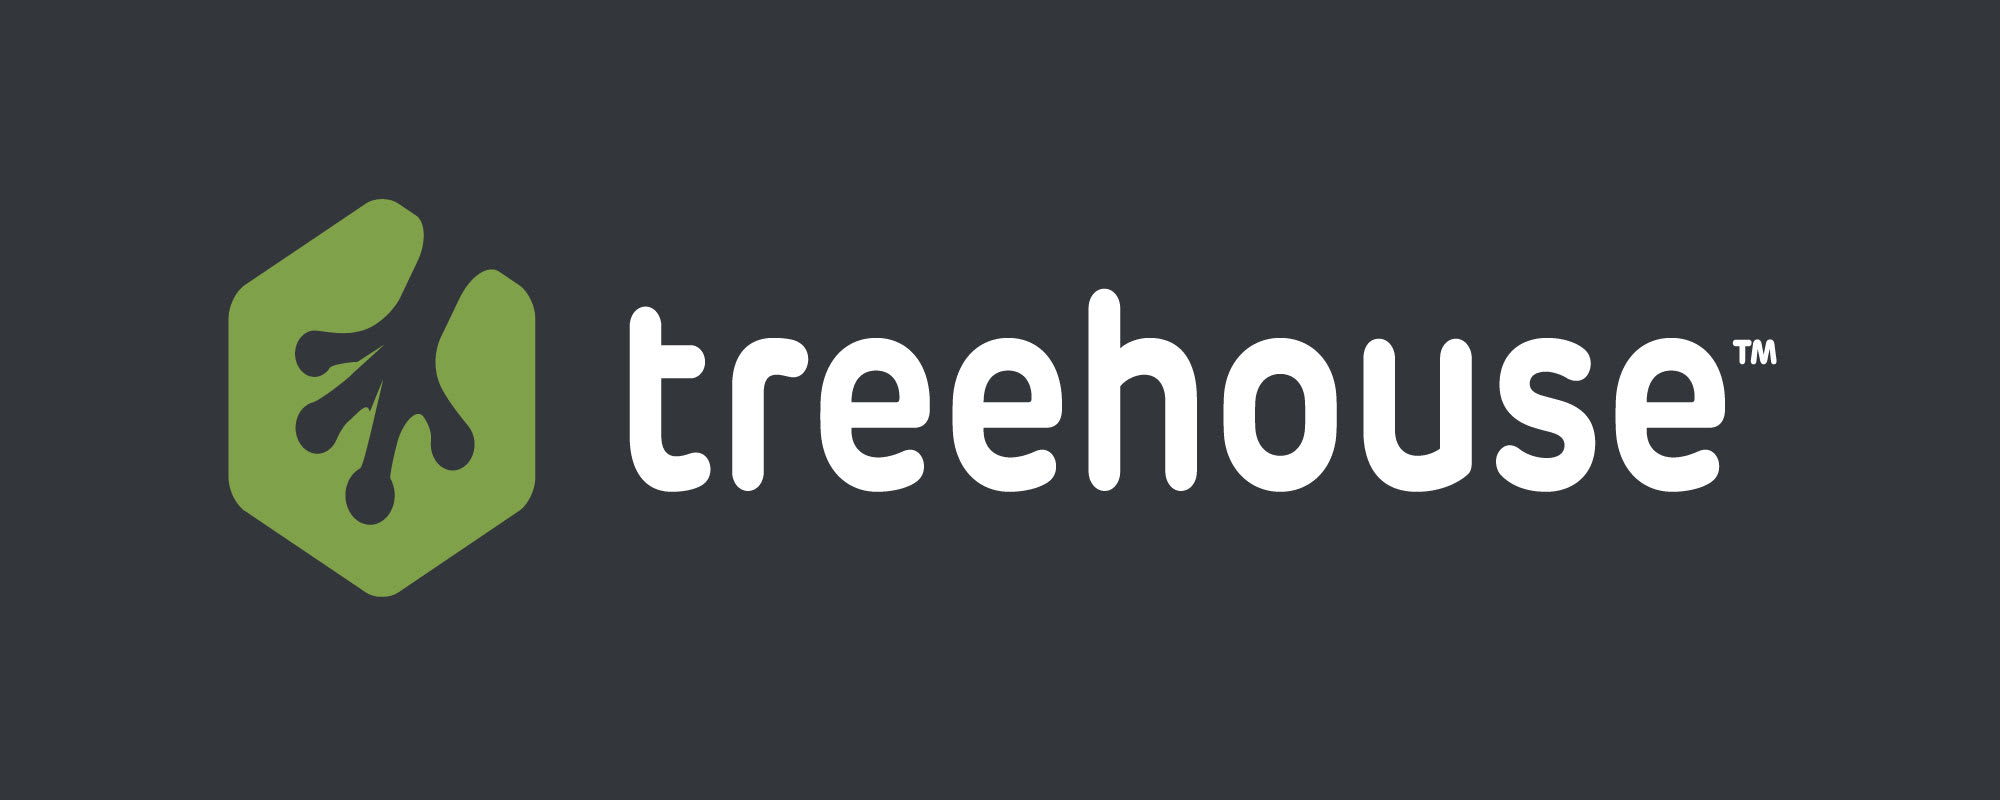 Treehouse Launches New In-Browser Development Tool with Beginner Web Site Coding Course